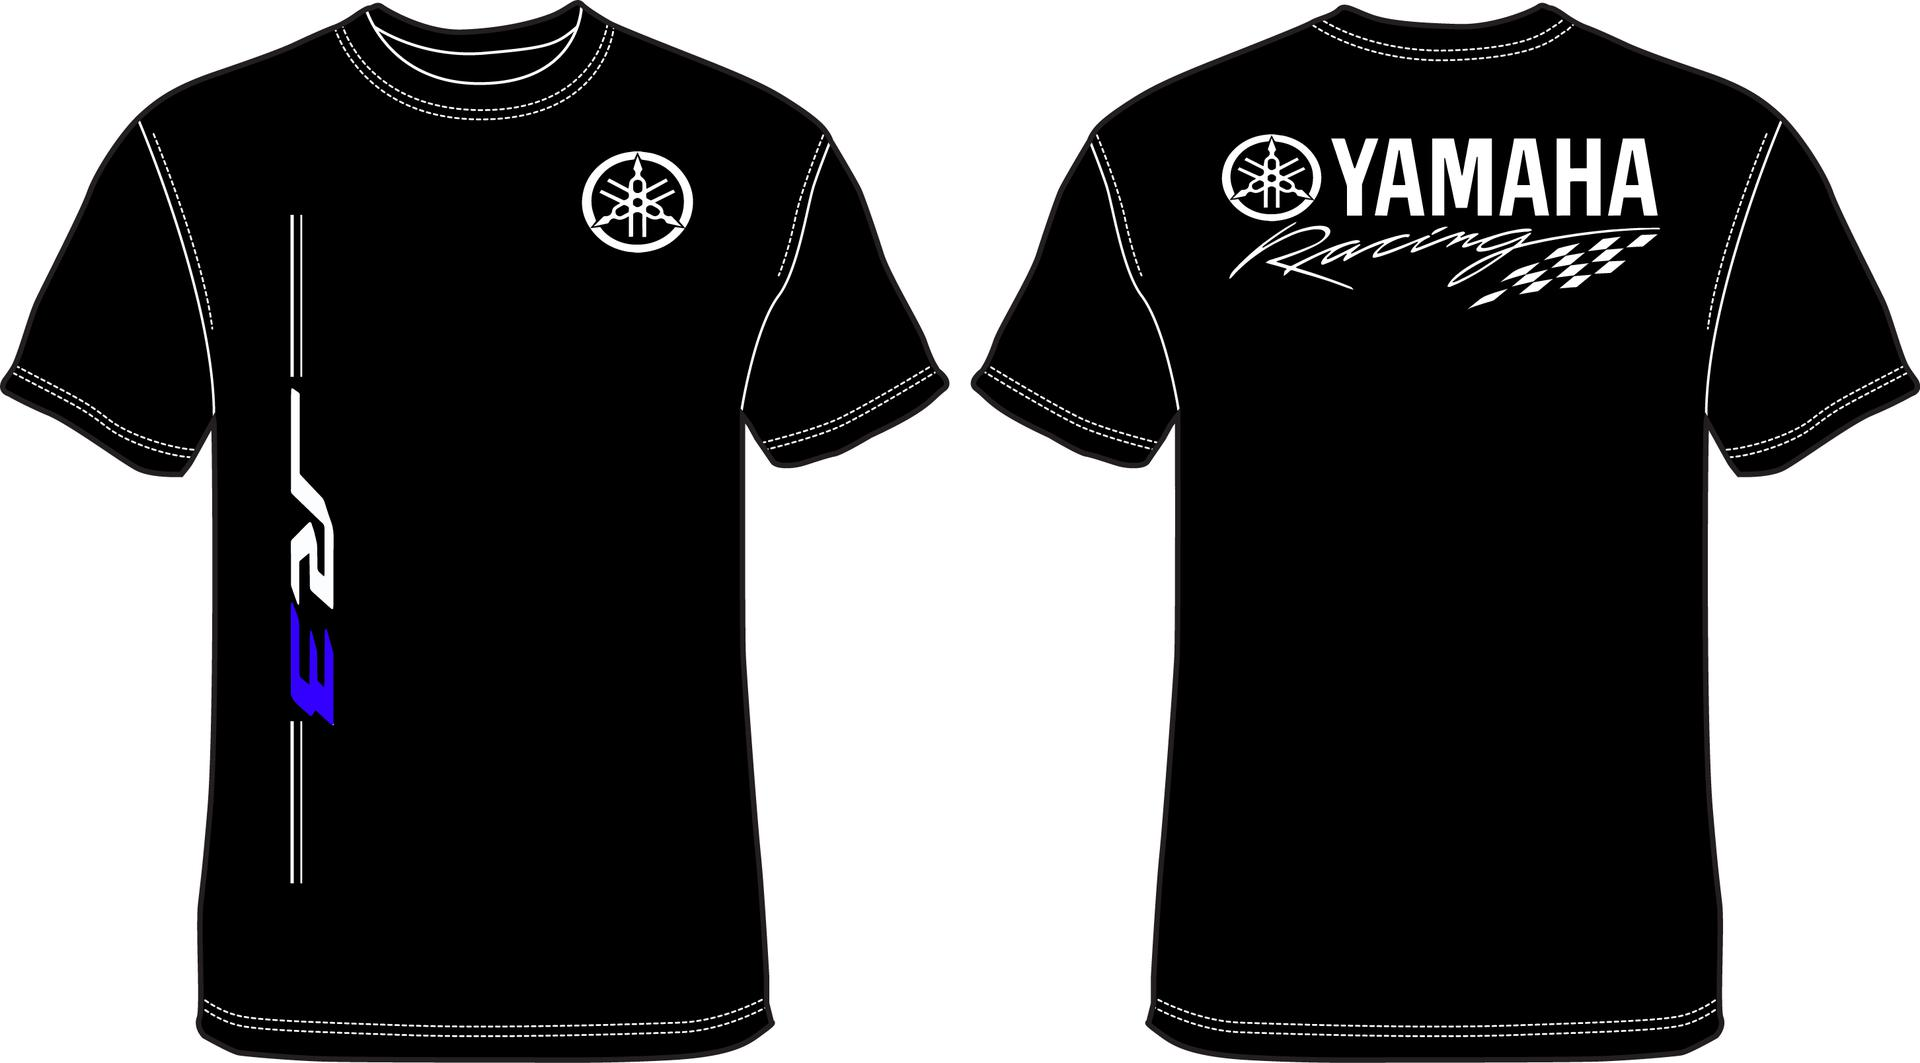 Black yamaha t shirt - Click Image For Larger Version Name R3 Yamaha Racin Front Back Blue Jpg Views